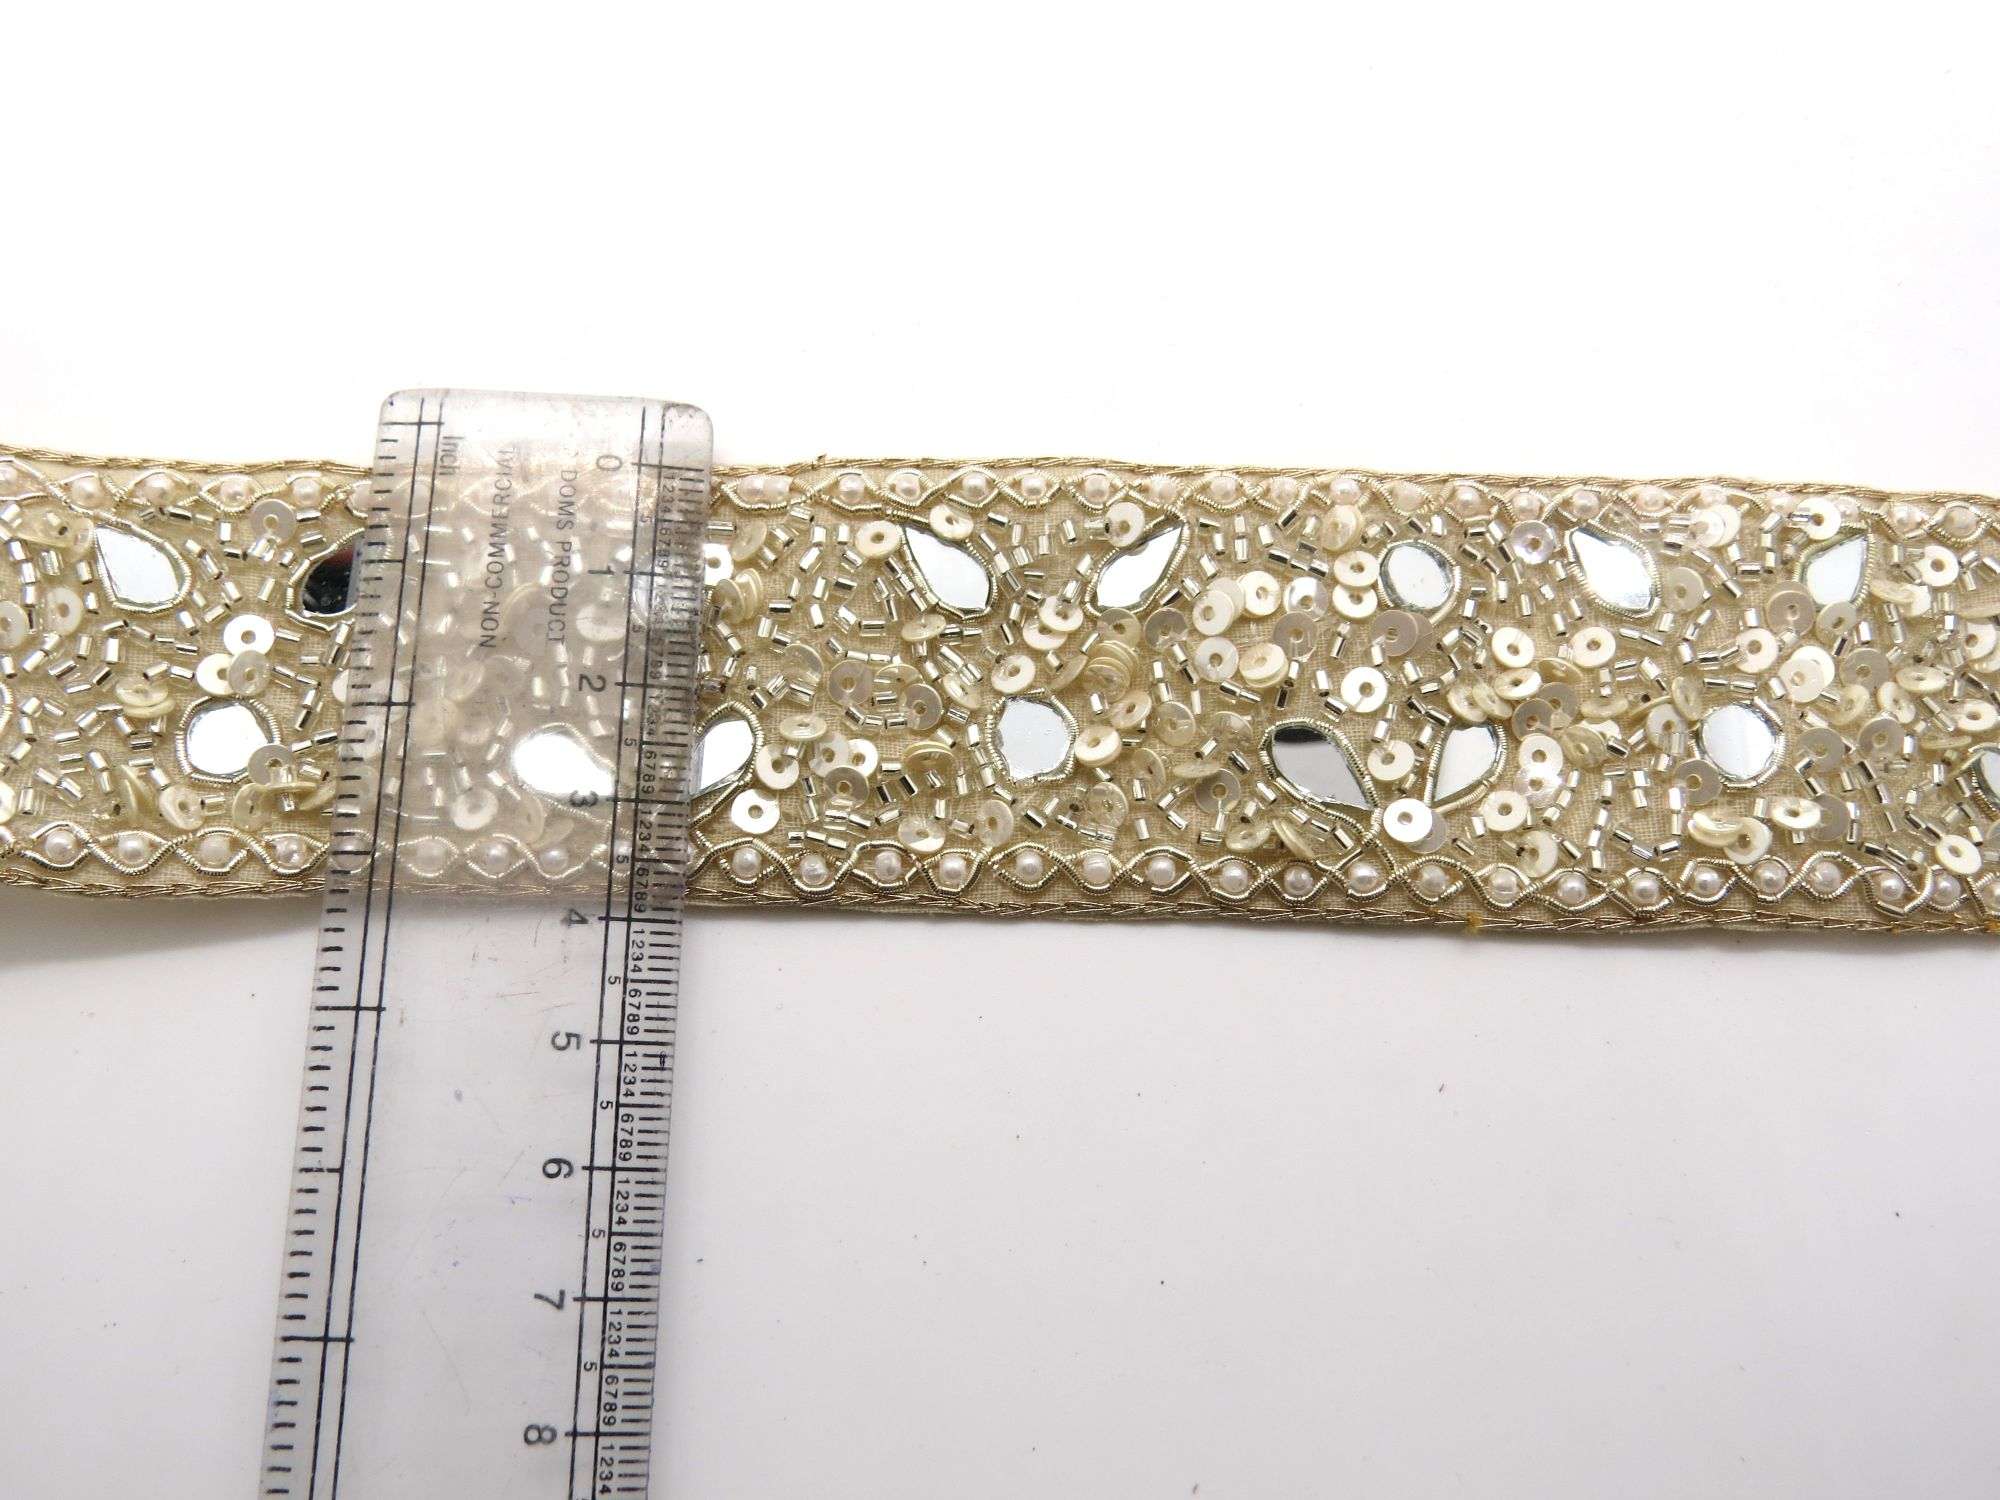 beige gold bead lace fabric trim | 4cm wide sewing embellish edging lace border | indian mirror work pearl bead bridal lace trim by the yard